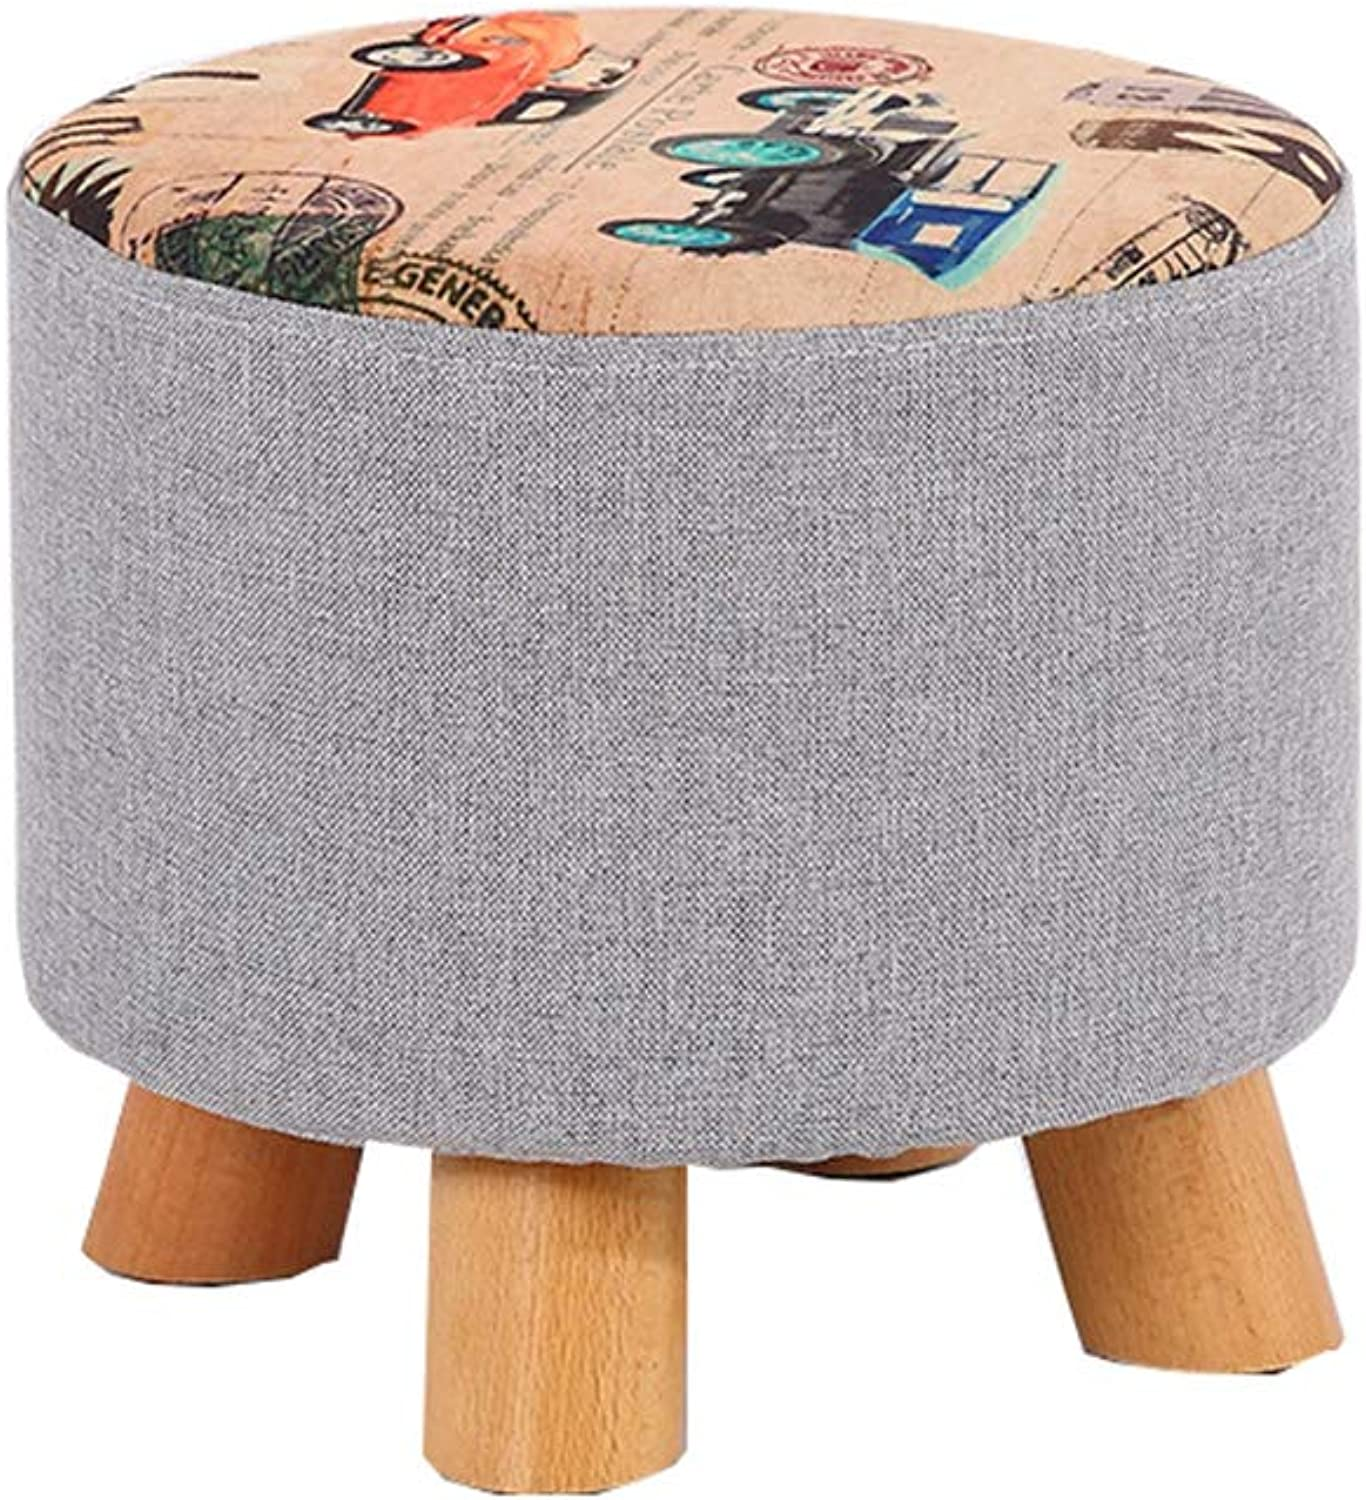 Round Footstool Thick Solid Wood Small Osman shoes Stool Detachable Multi-Function Cloth Classic Car Pattern (28cmx25cm)